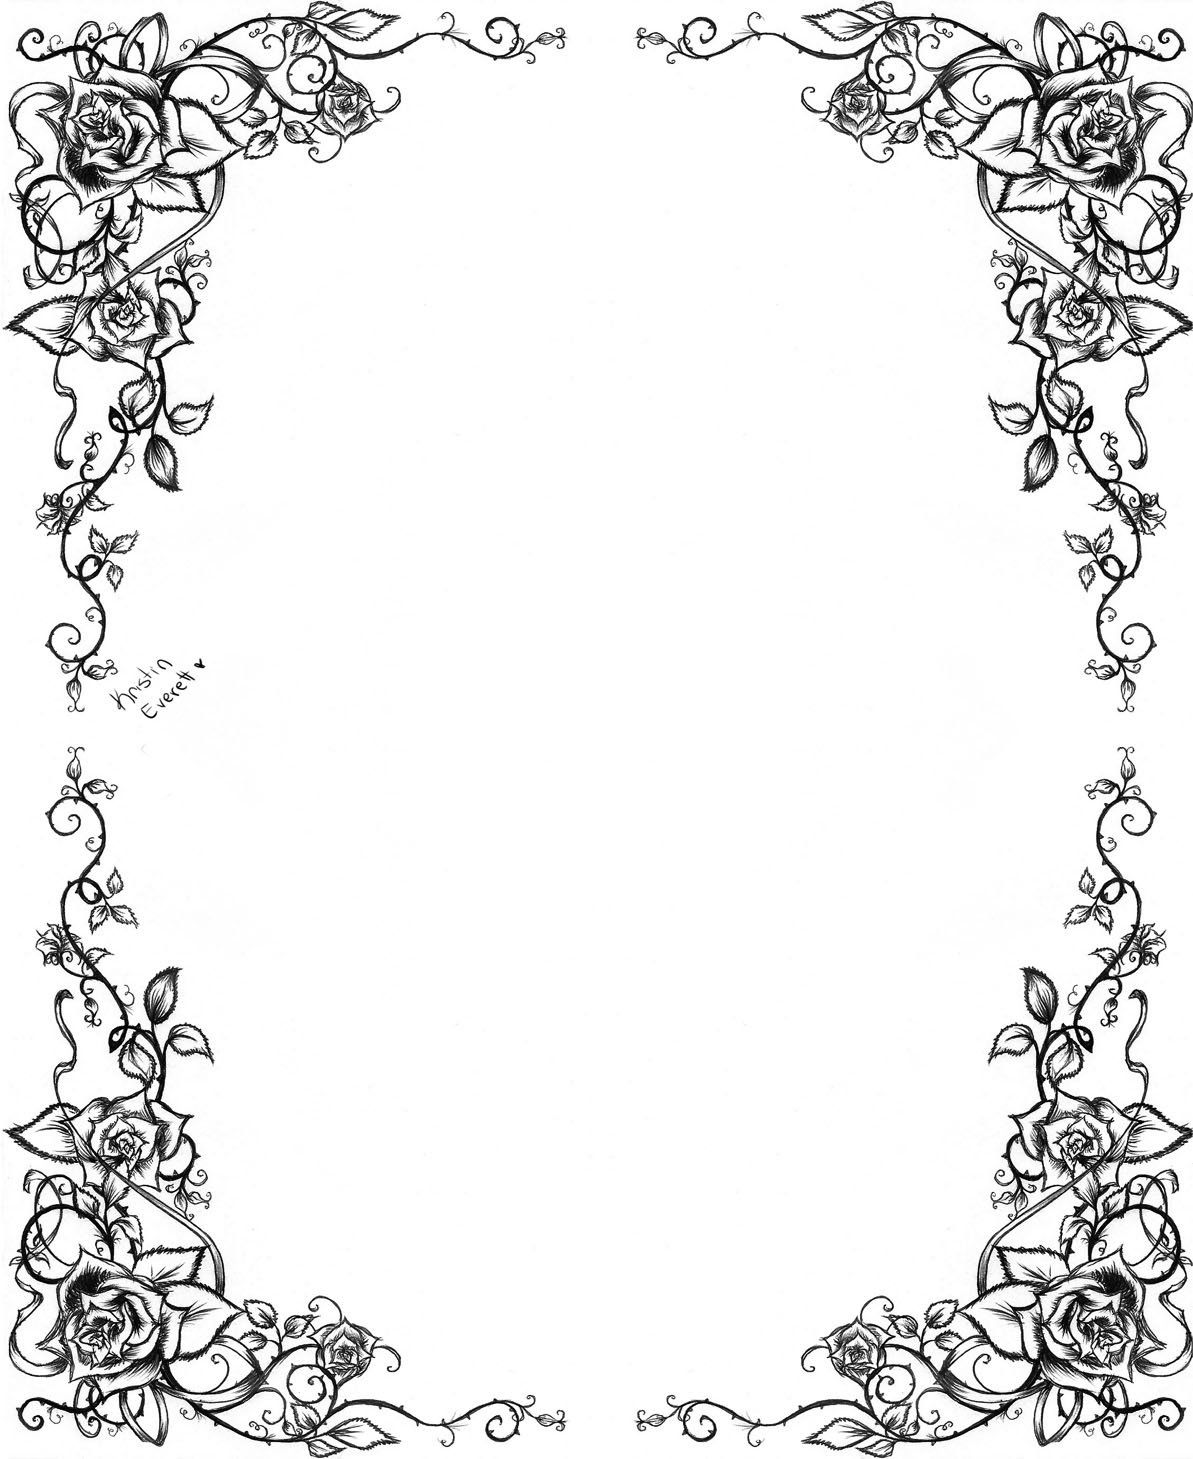 Another Rose Border By Dreamangelkristi On Deviantart Calligraphy Borders Clip Art Borders Borders And Frames